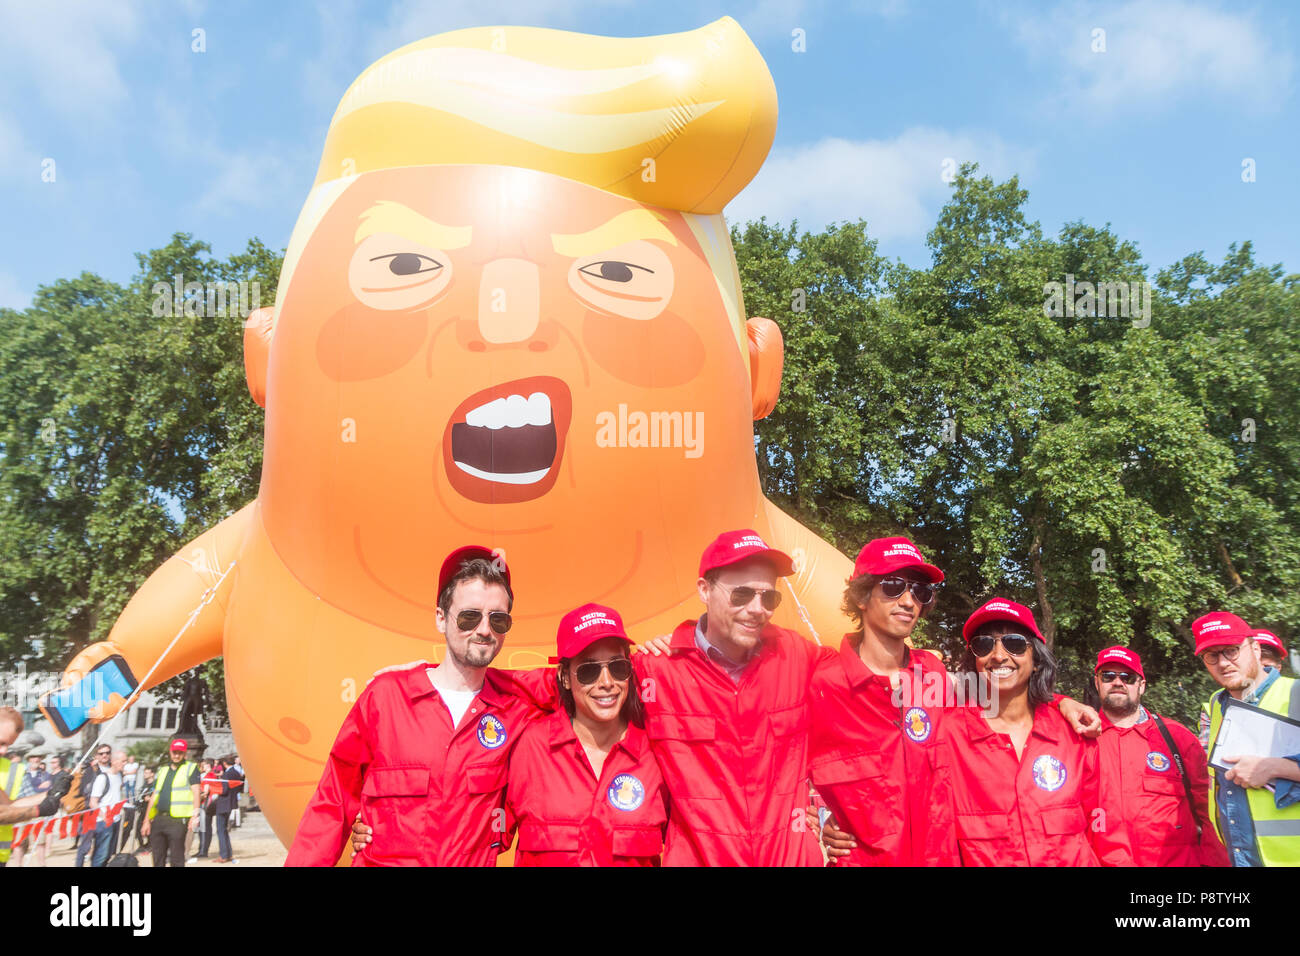 London, UK. 13th July, 2018. Baby Trump blimp floats about Parliament Square Credit: Zefrog/Alamy Live News Stock Photo